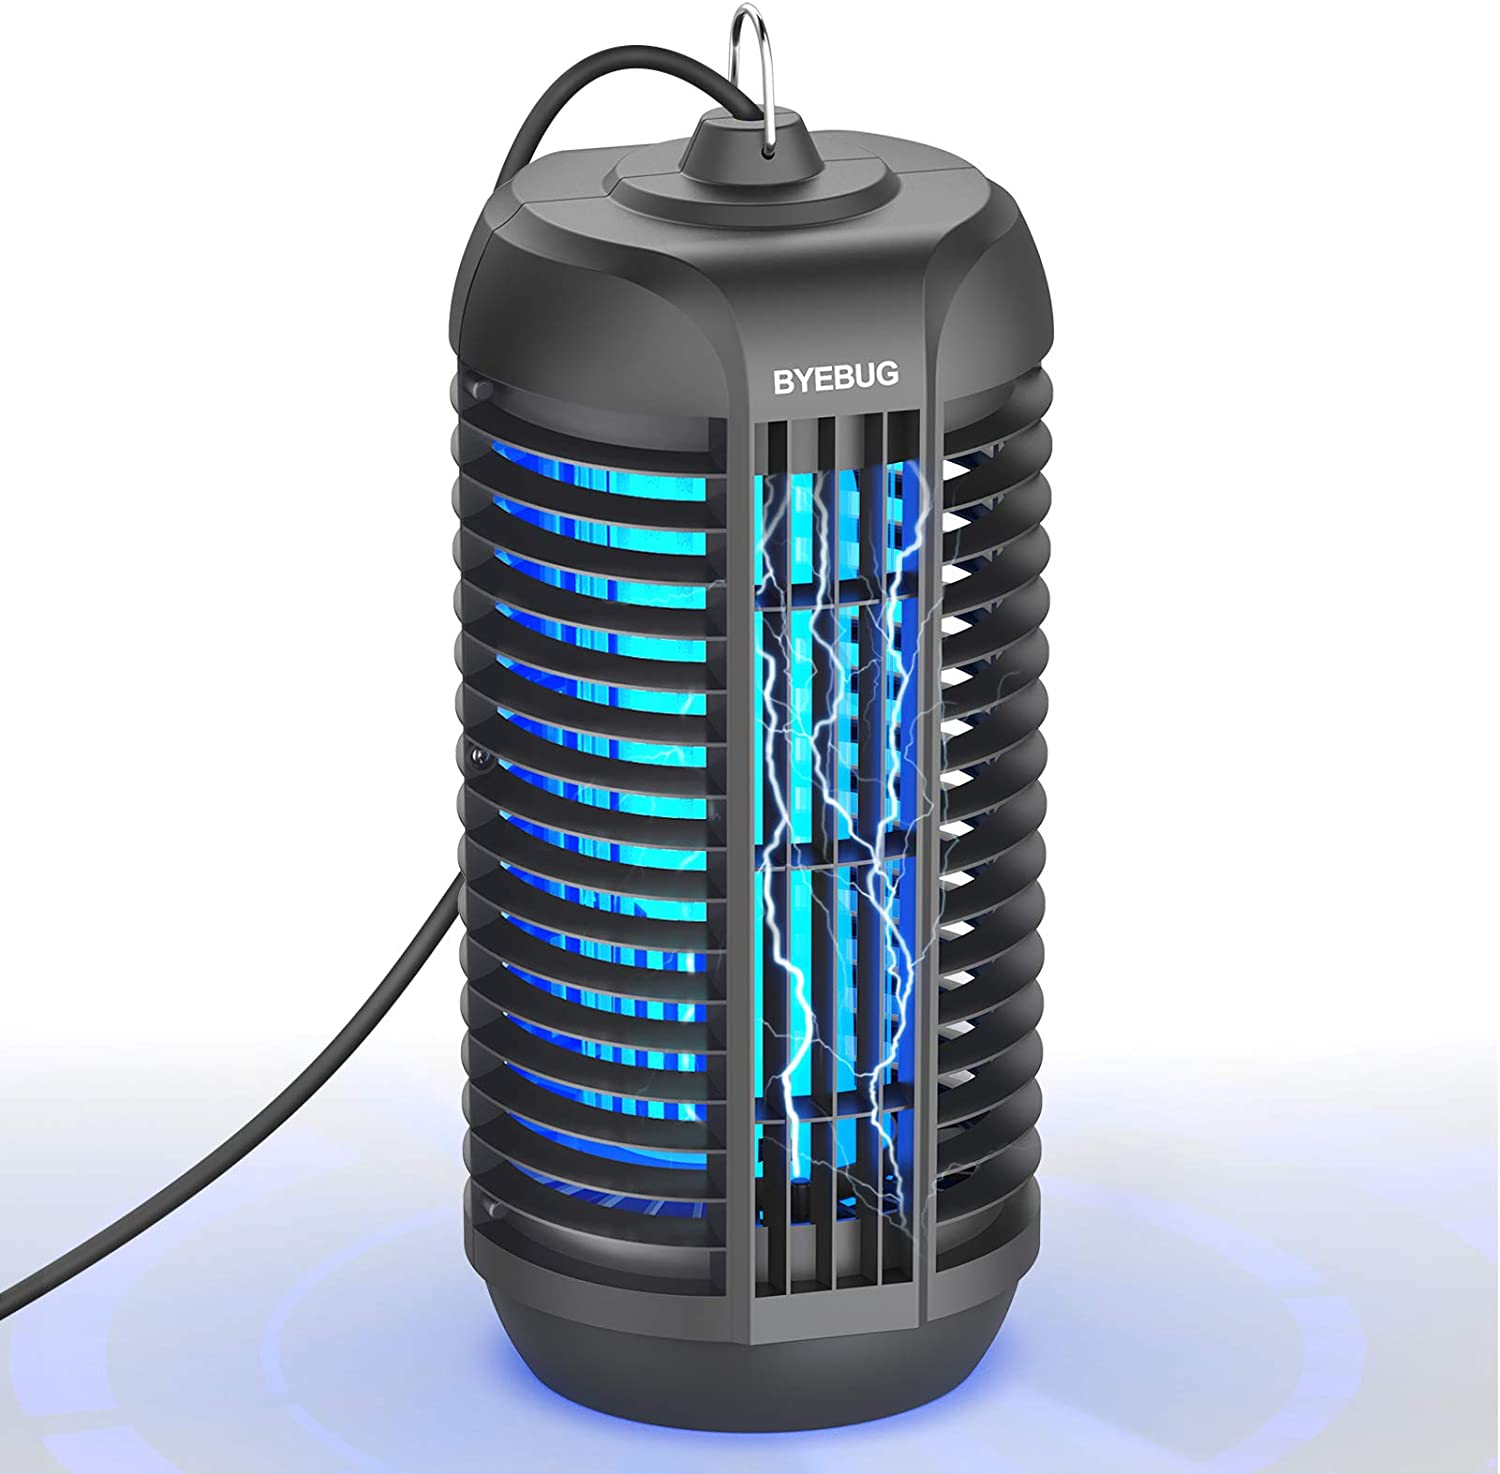 BYEBUG Bug Zapper, 4200V Electric Mosquito Zapper, Fly Insect Trap for Indoor & Outdoor, Mosquito Killer Lamp for Backyard, Patio, Home, Room